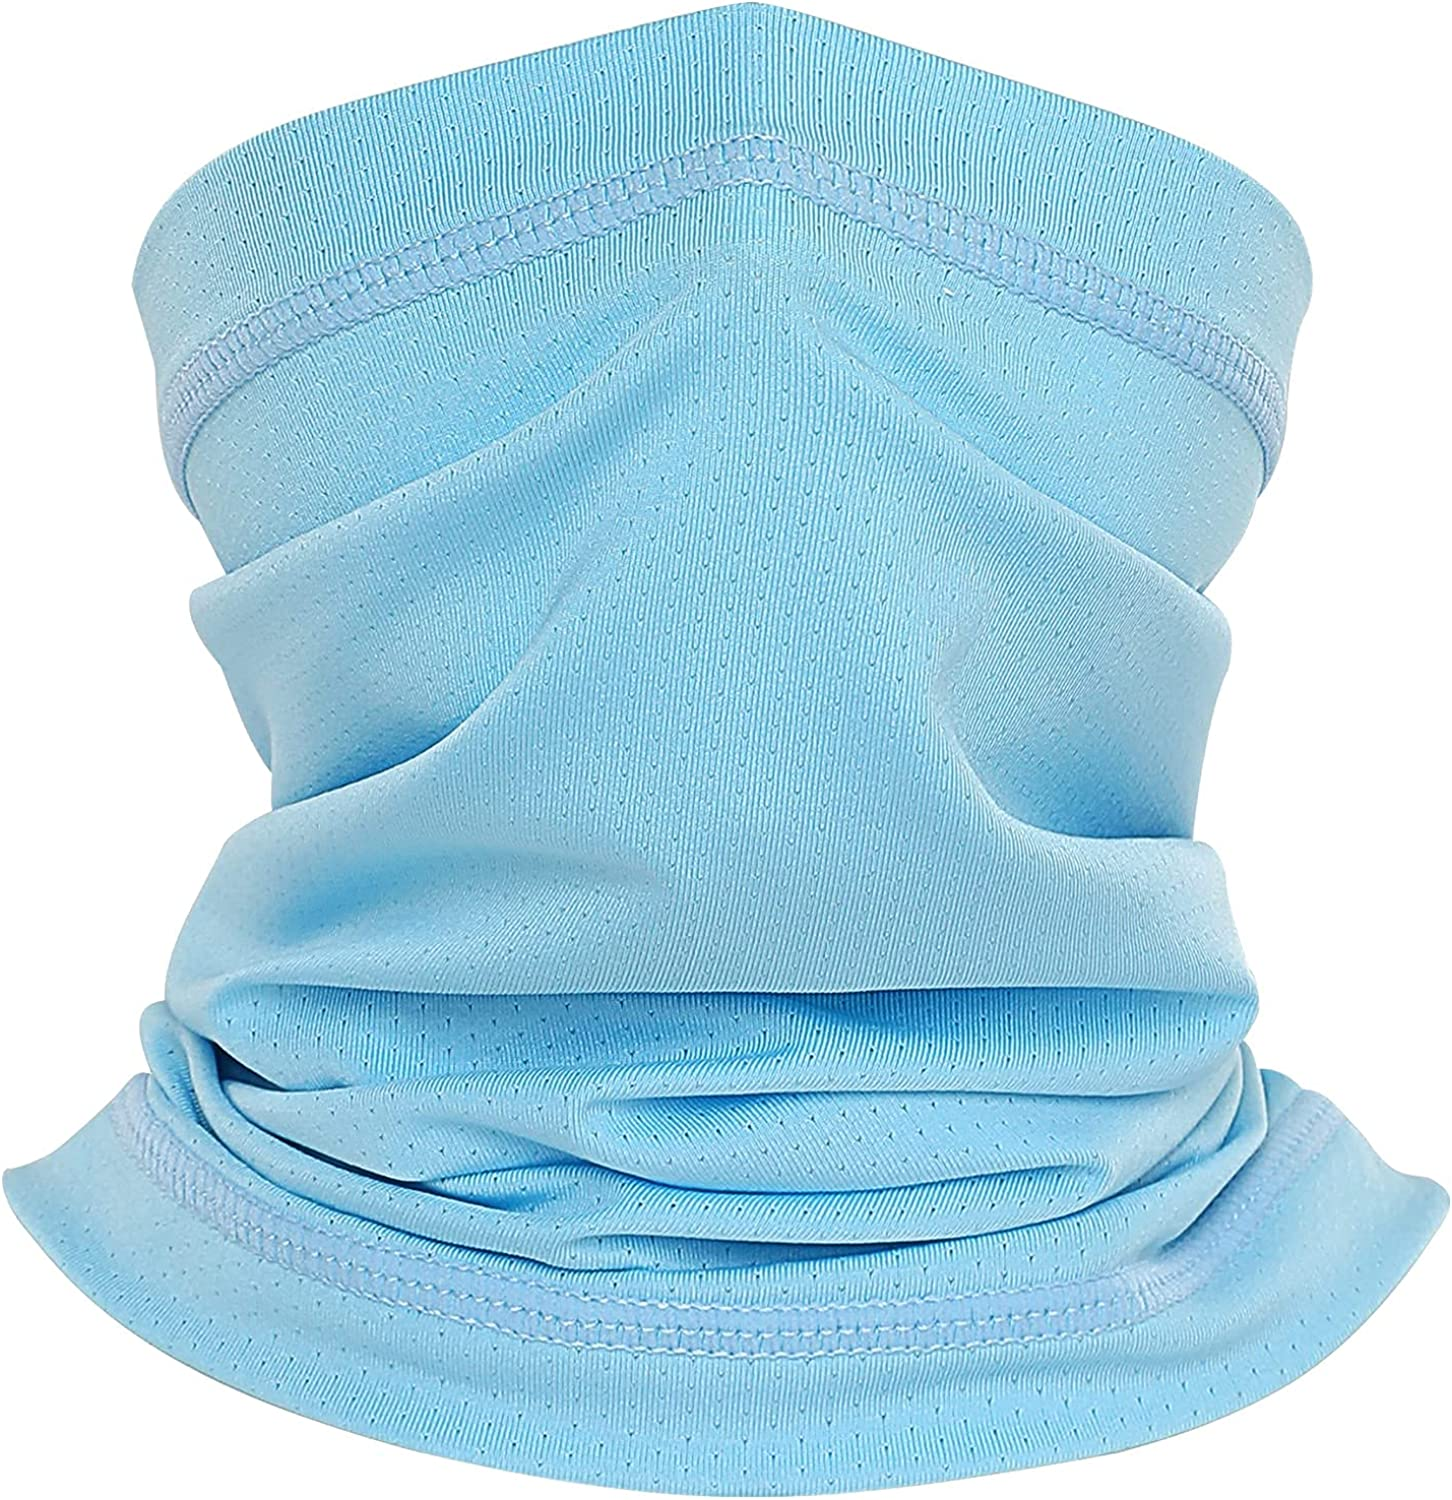 Jepony Kid Neck Gaiter Face Mask for Boys Girl Balaclava Cooling Face Cover Cycling Scarf Mask UV Protection Outdoor